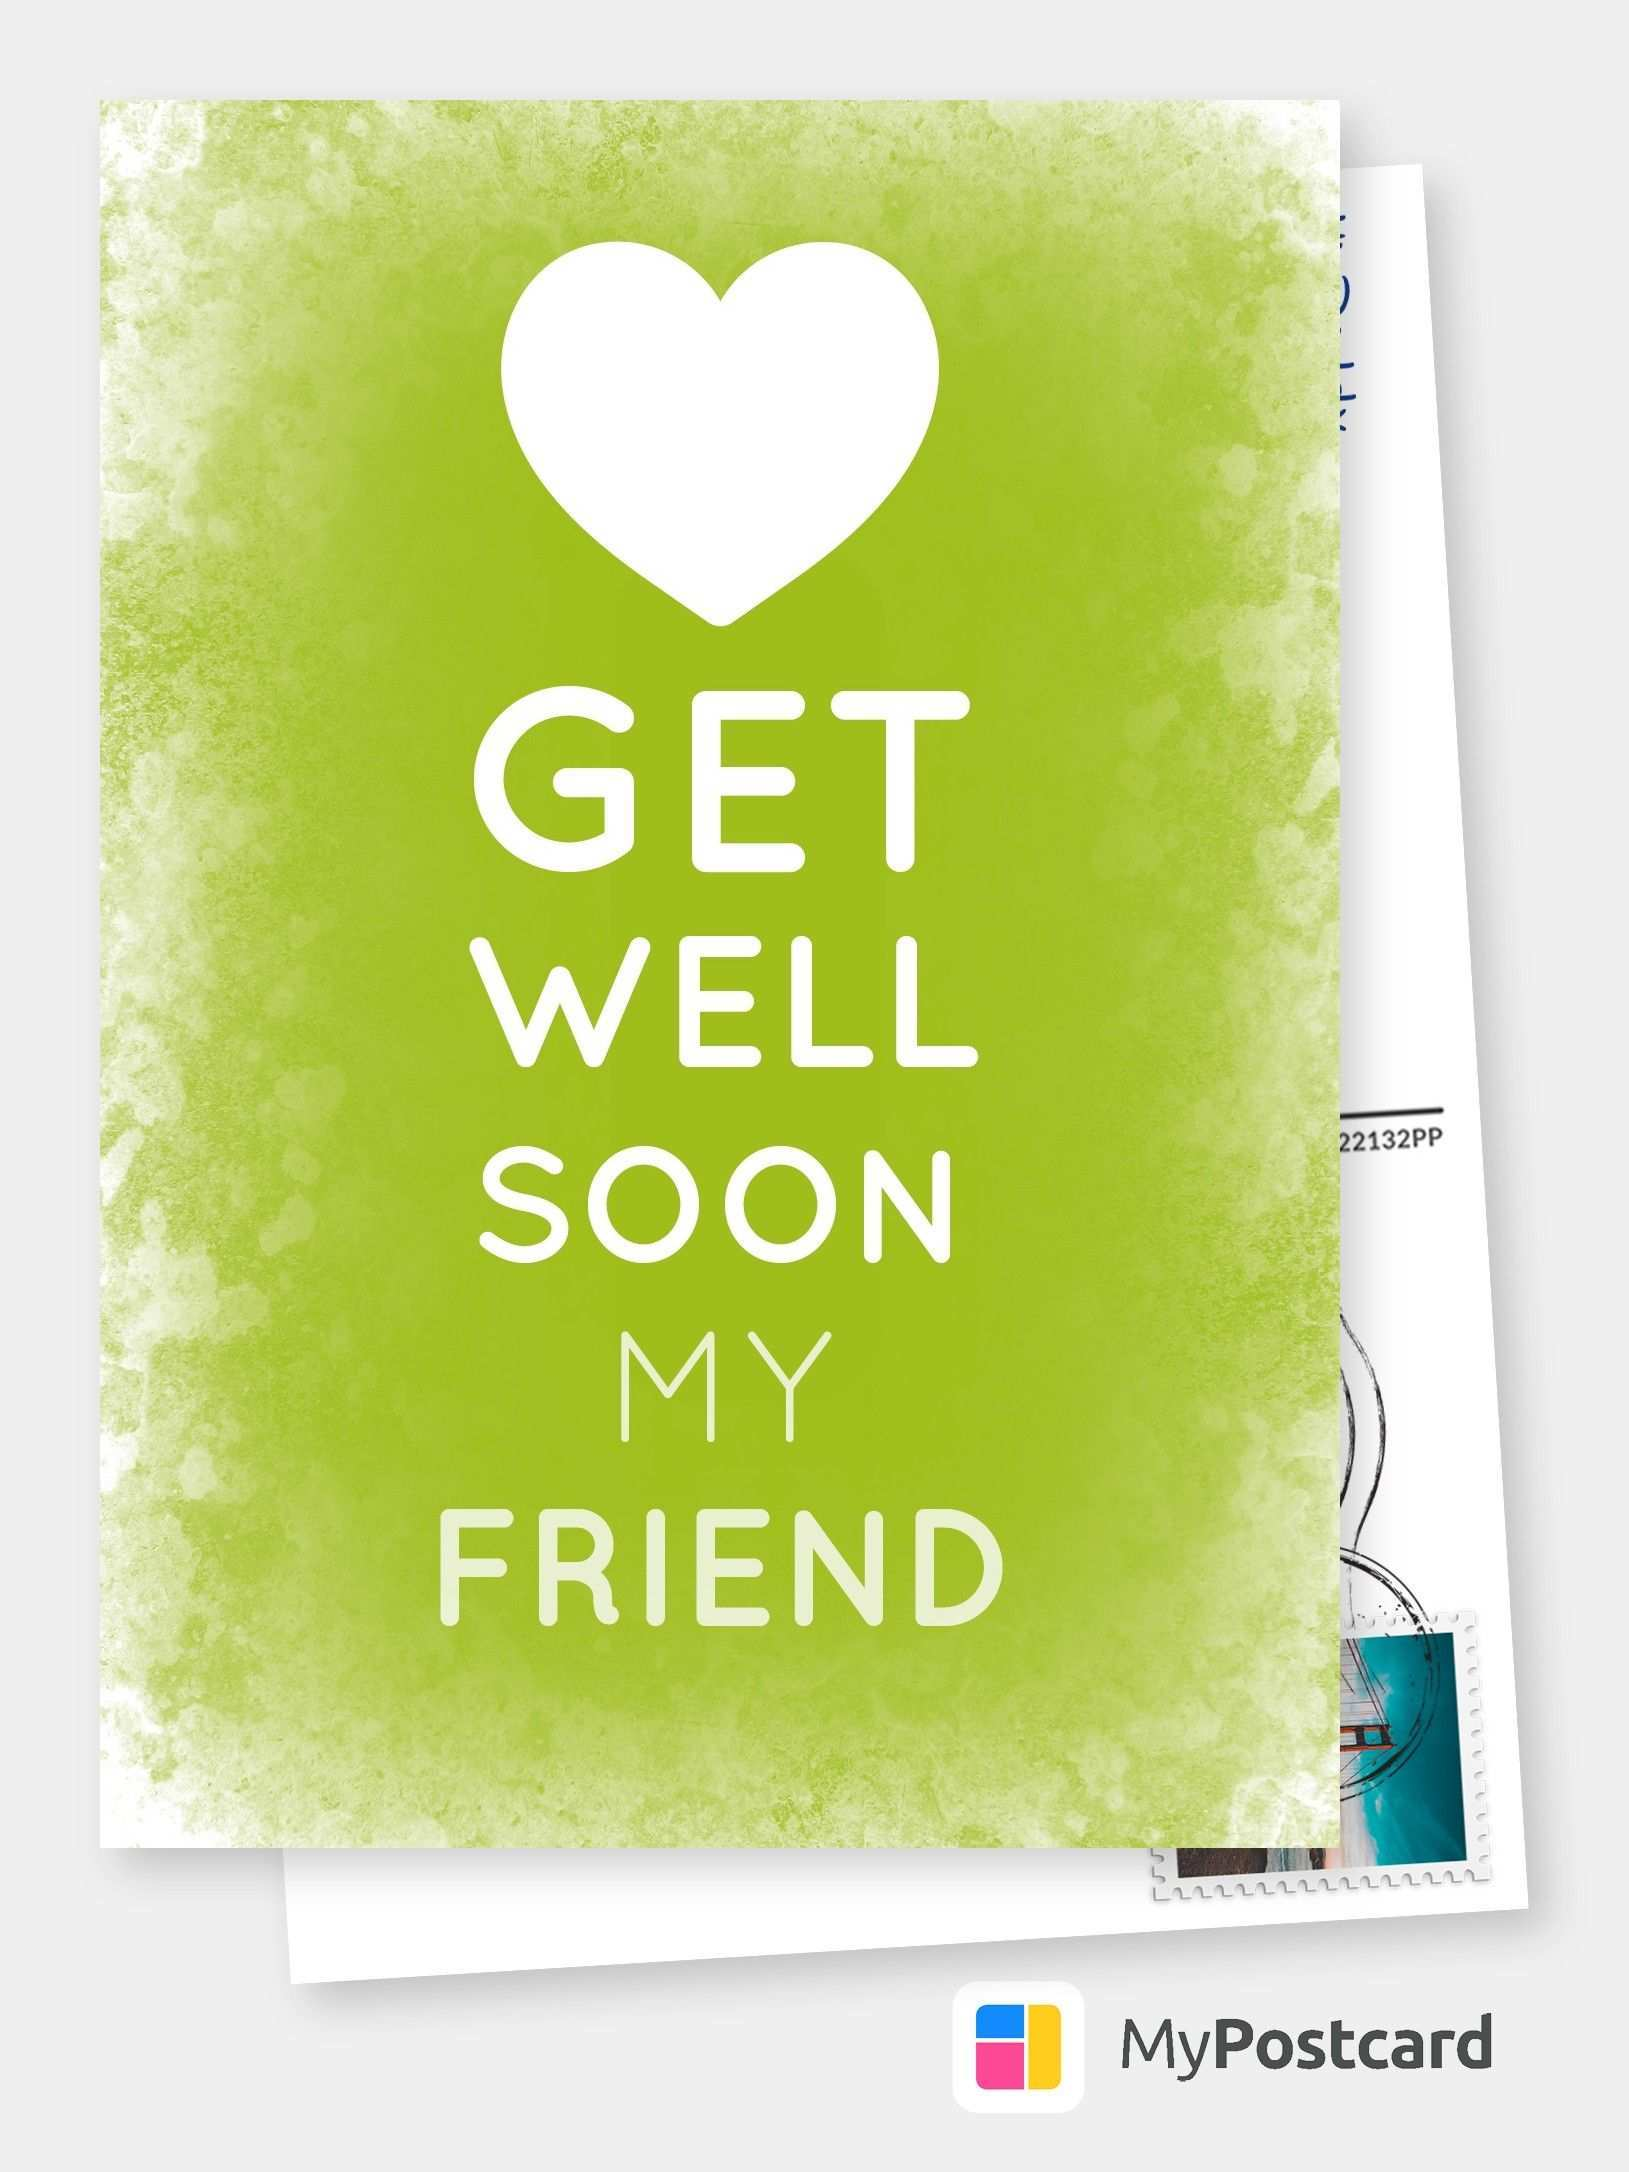 Create Your Own Get Well Soon Cards Free Printable Templates Printed Mailed For You Send Your Get Well Soon Cards Online Free Shipping International In 2020